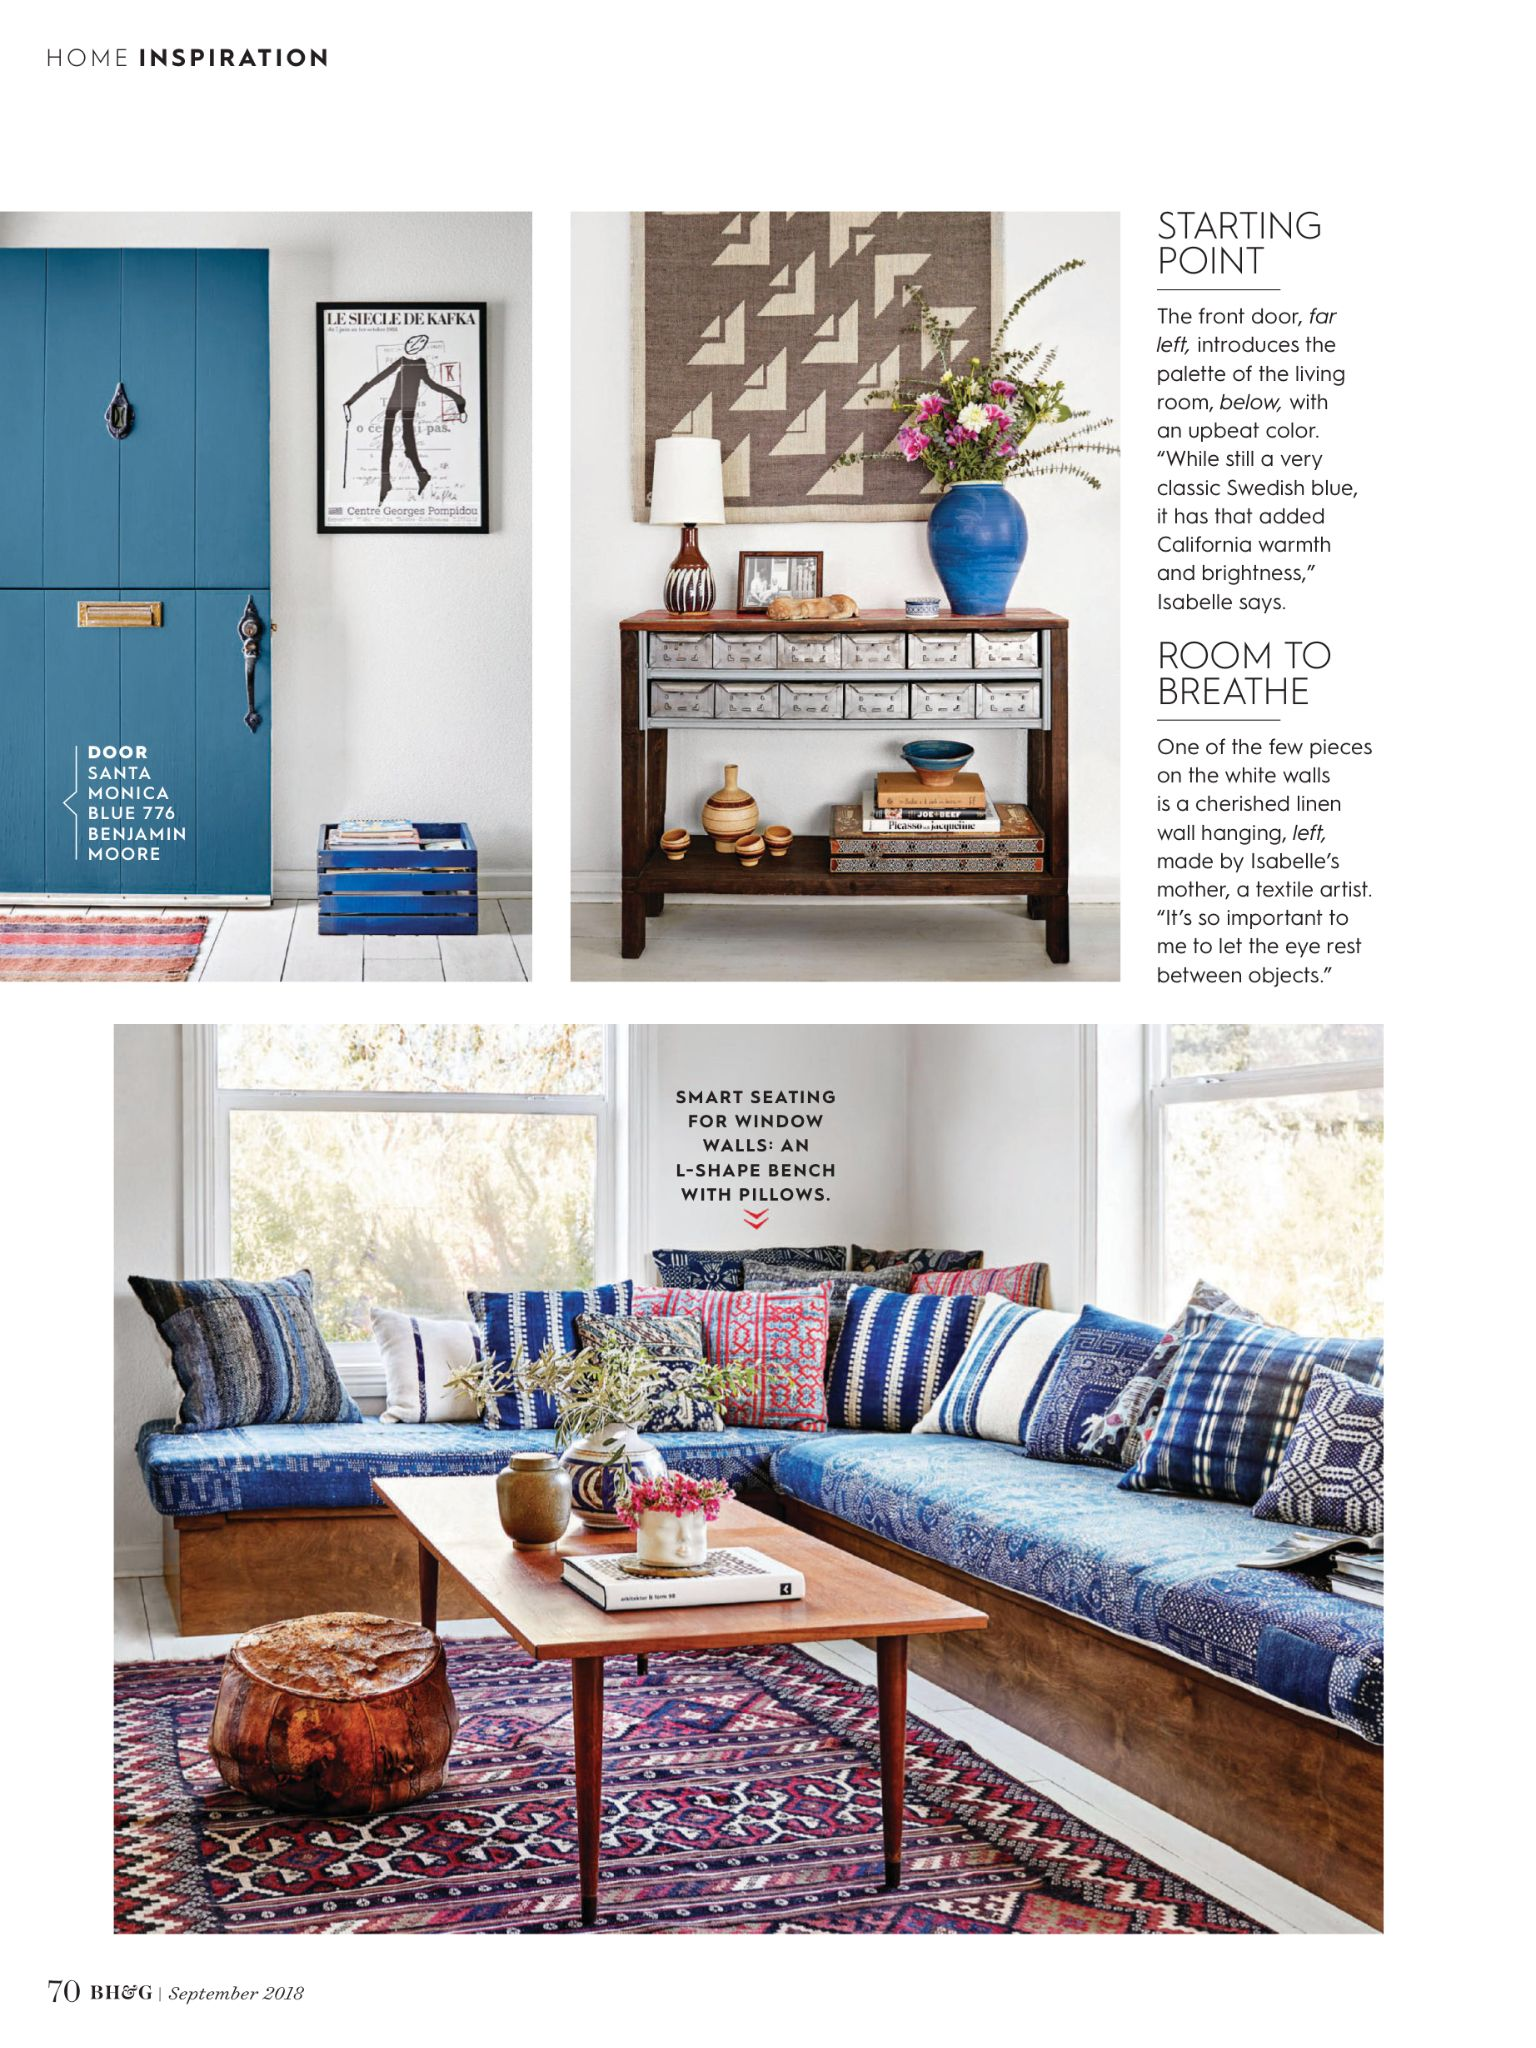 678f021f391a1bad221258cb930b9a04 - Better Homes And Gardens September 2018